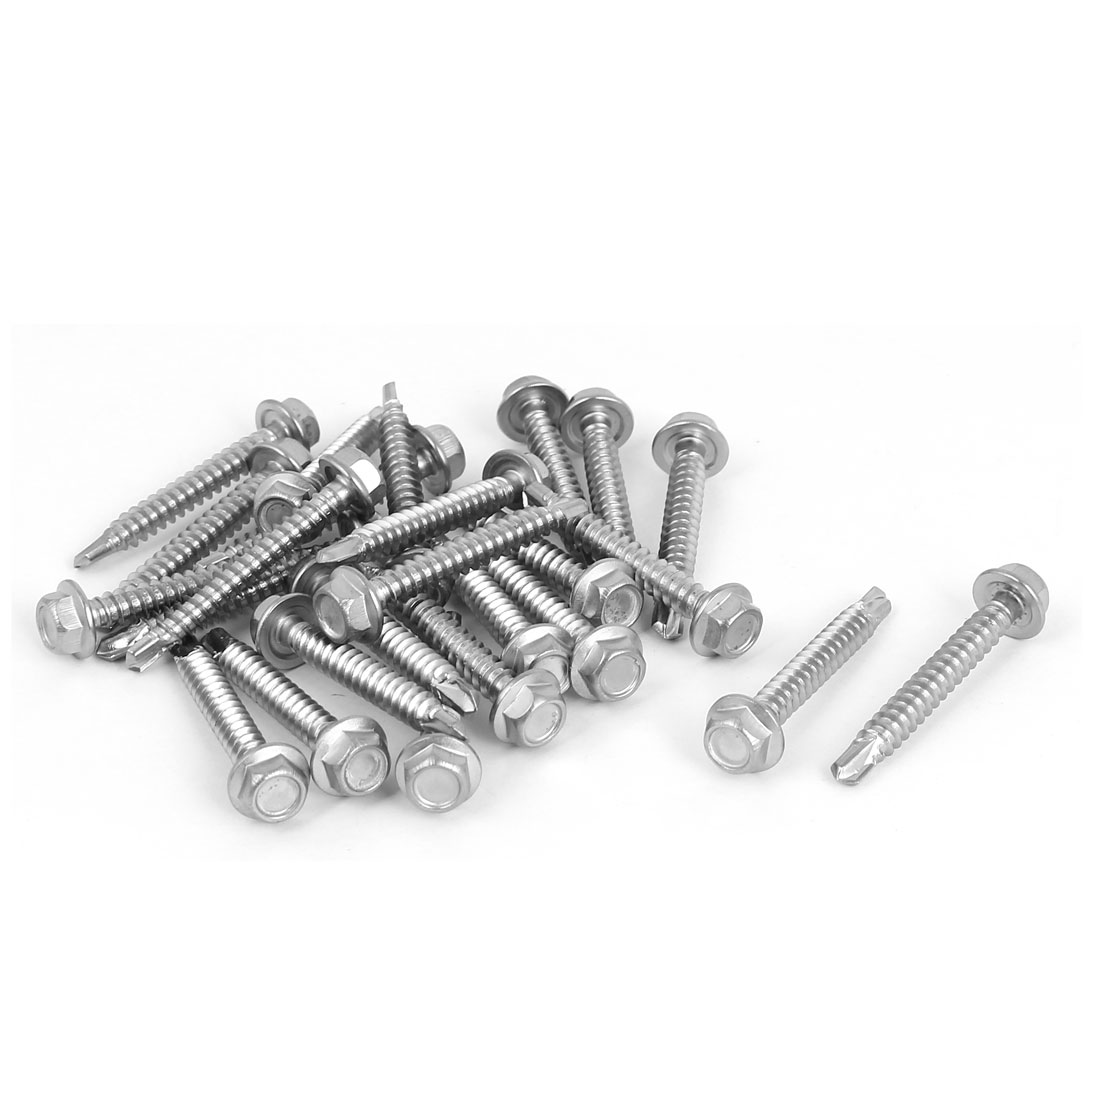 M4.2 x 32mm Thread Hex Washer Head Self Drilling Tek Screws Bolts 25 Pcs